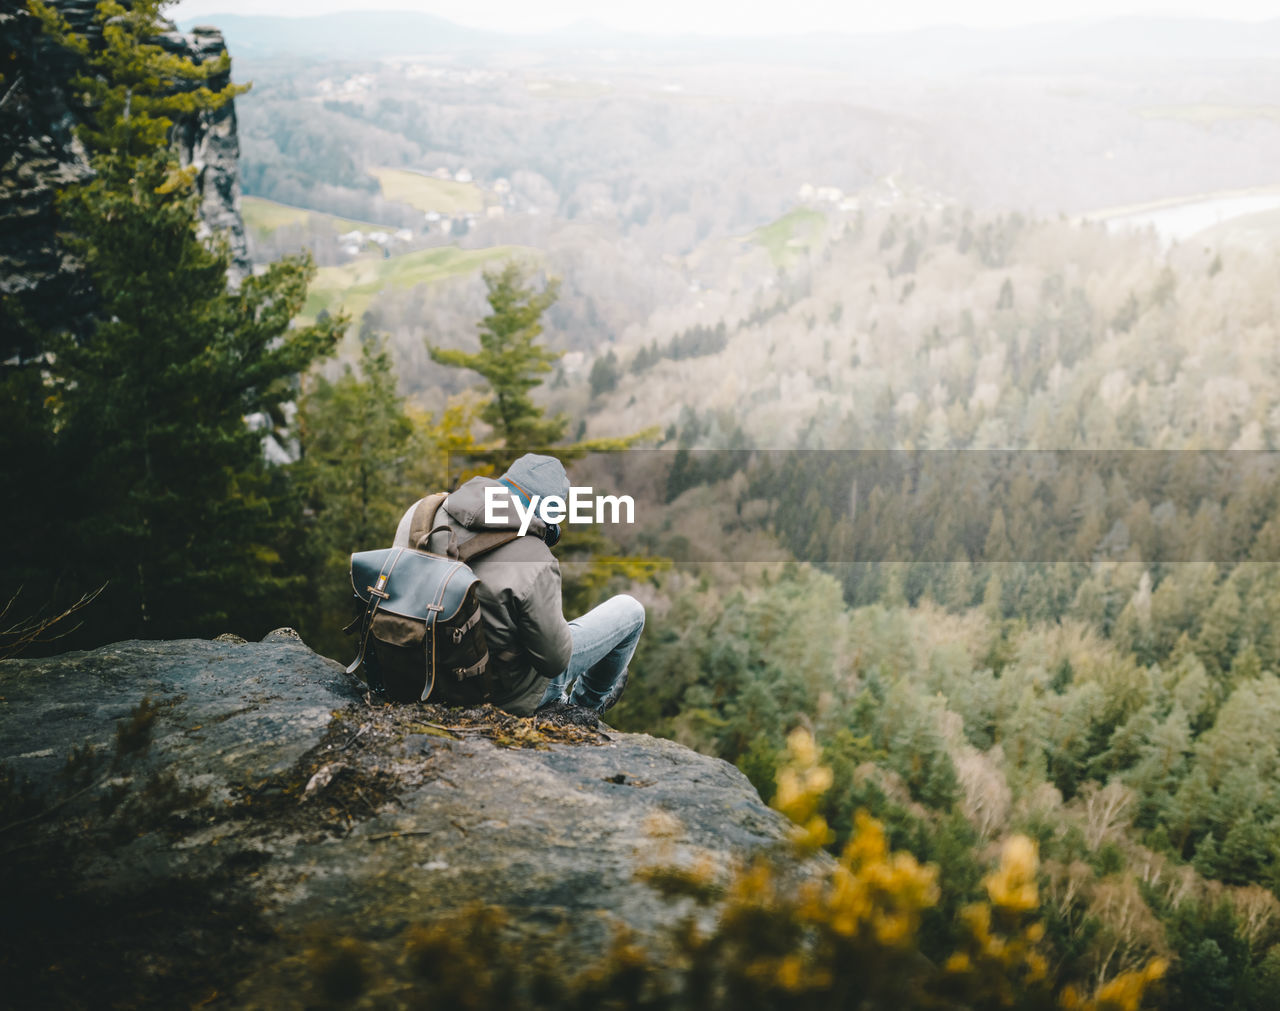 Rear View Of Hiker Sitting On Rock Looking At Trees